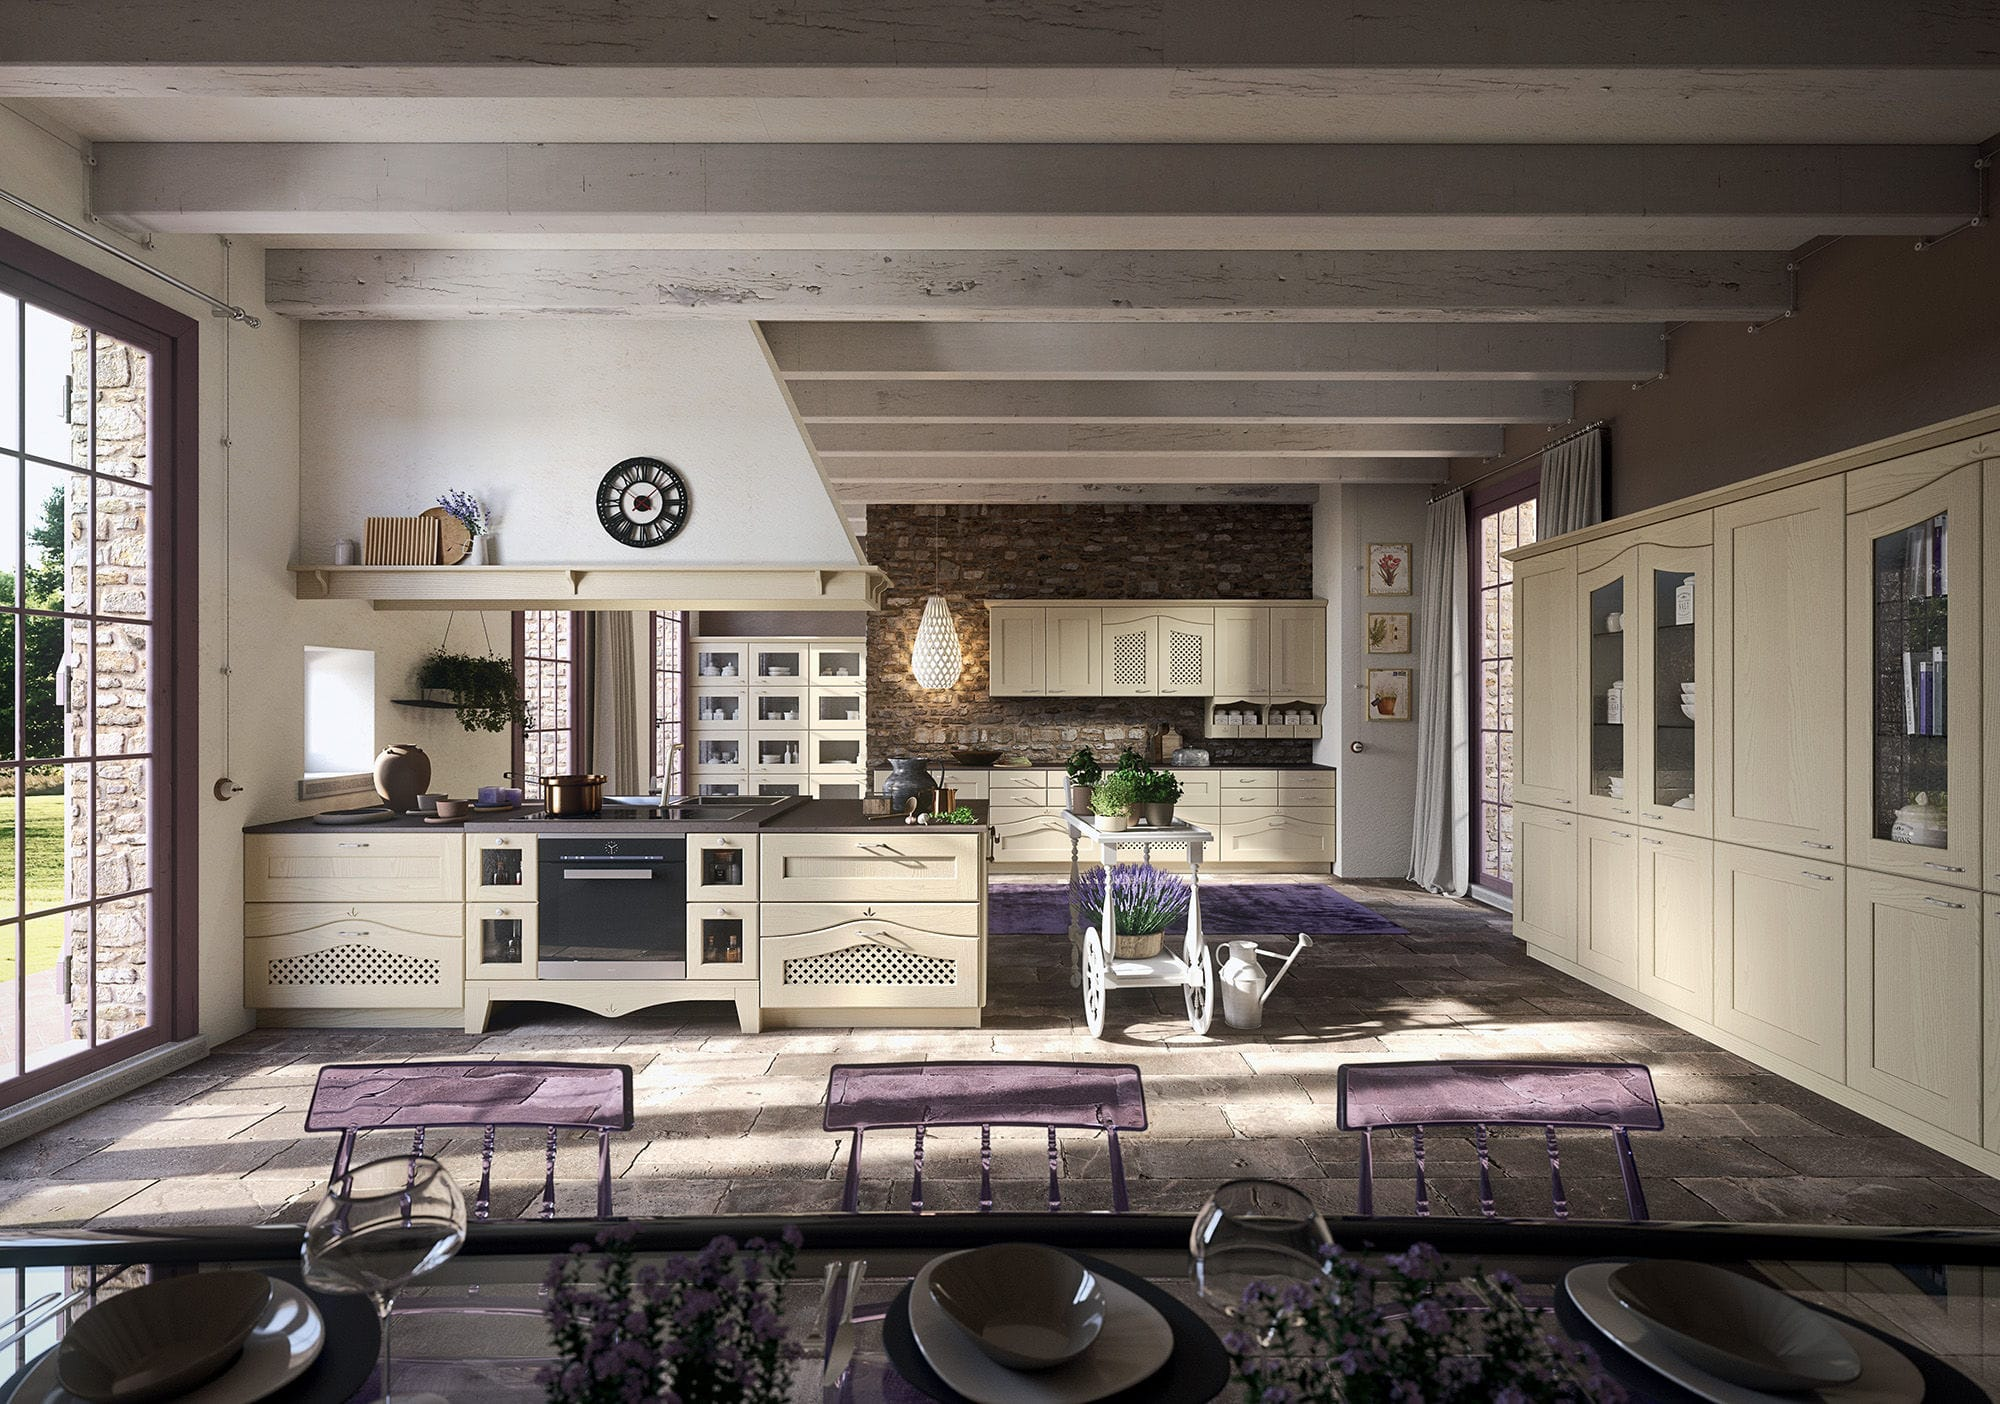 Traditional Kitchen Wooden With Handles Ducale Arrital - Ducale-kitchen-design-by-arrital-cucine